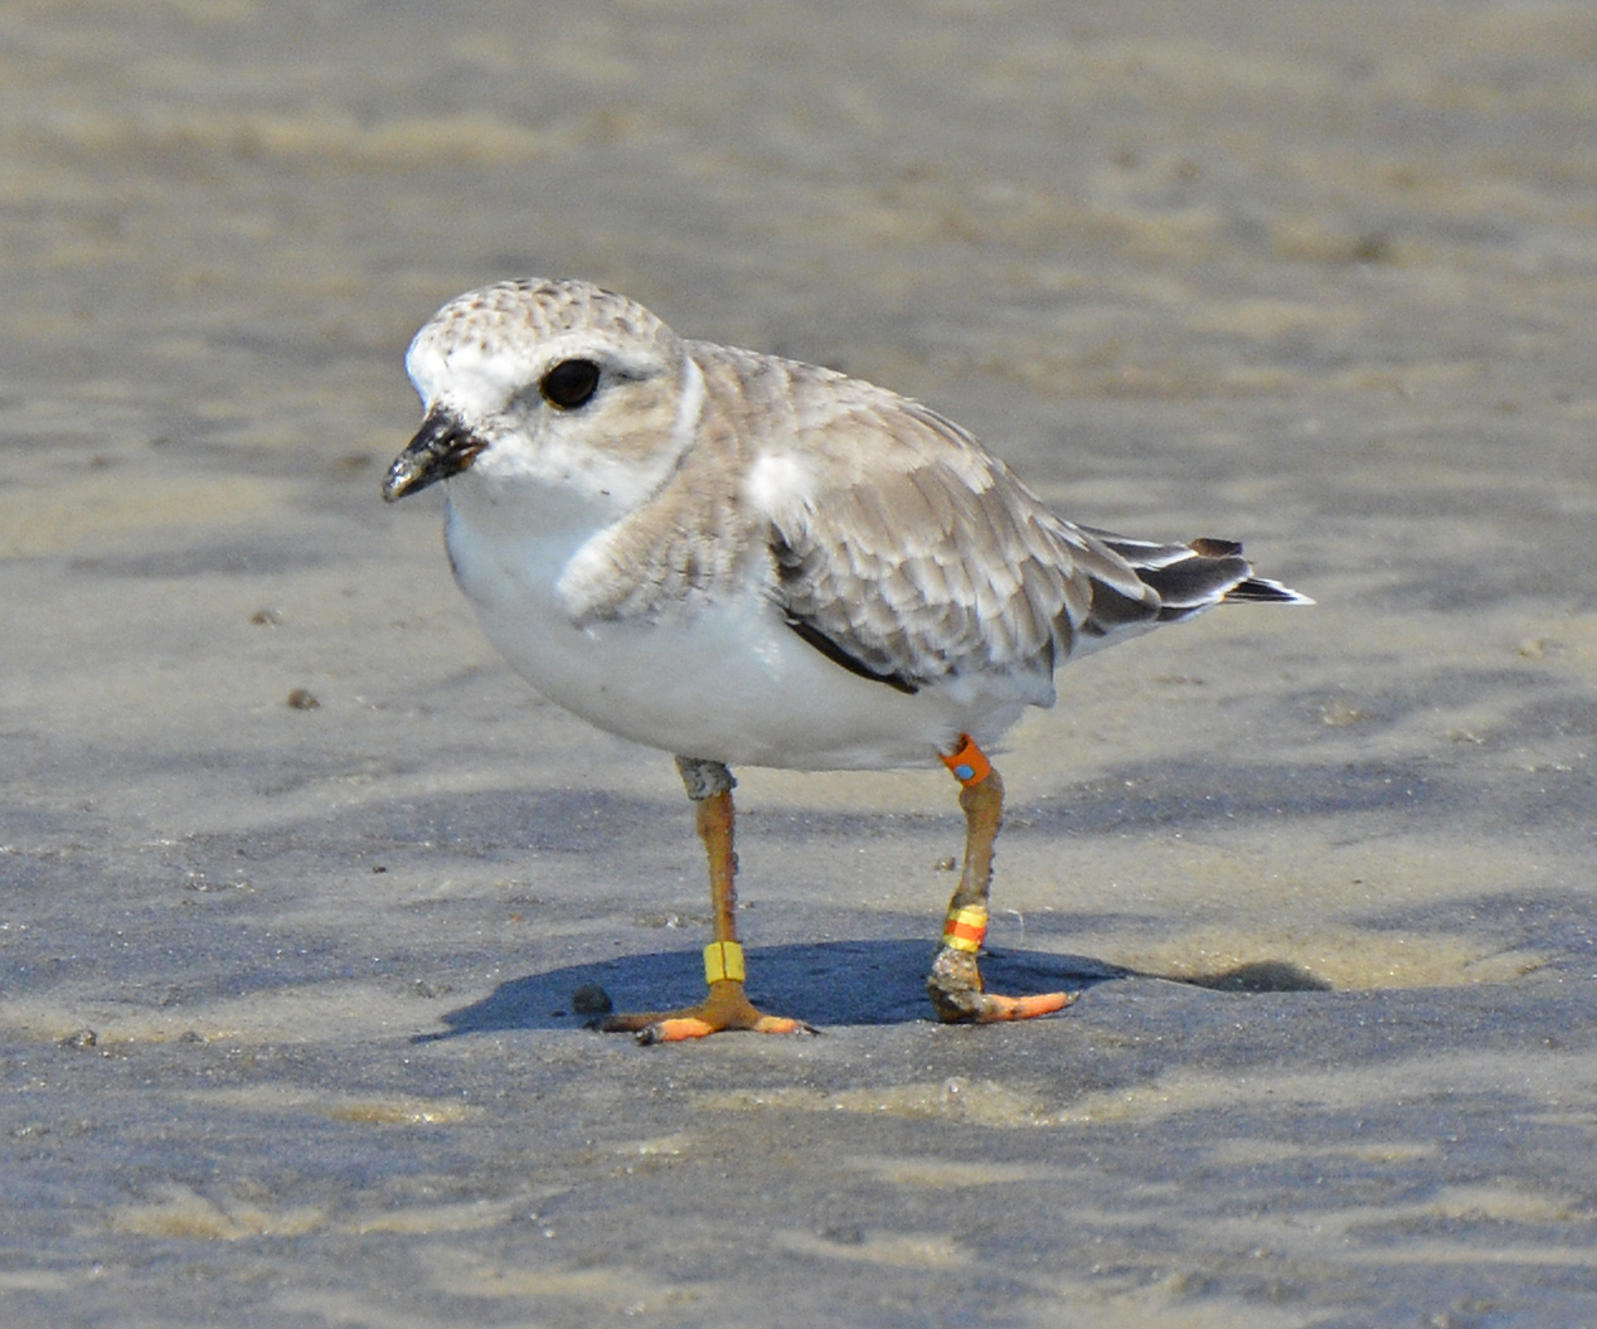 injured Piping Plover